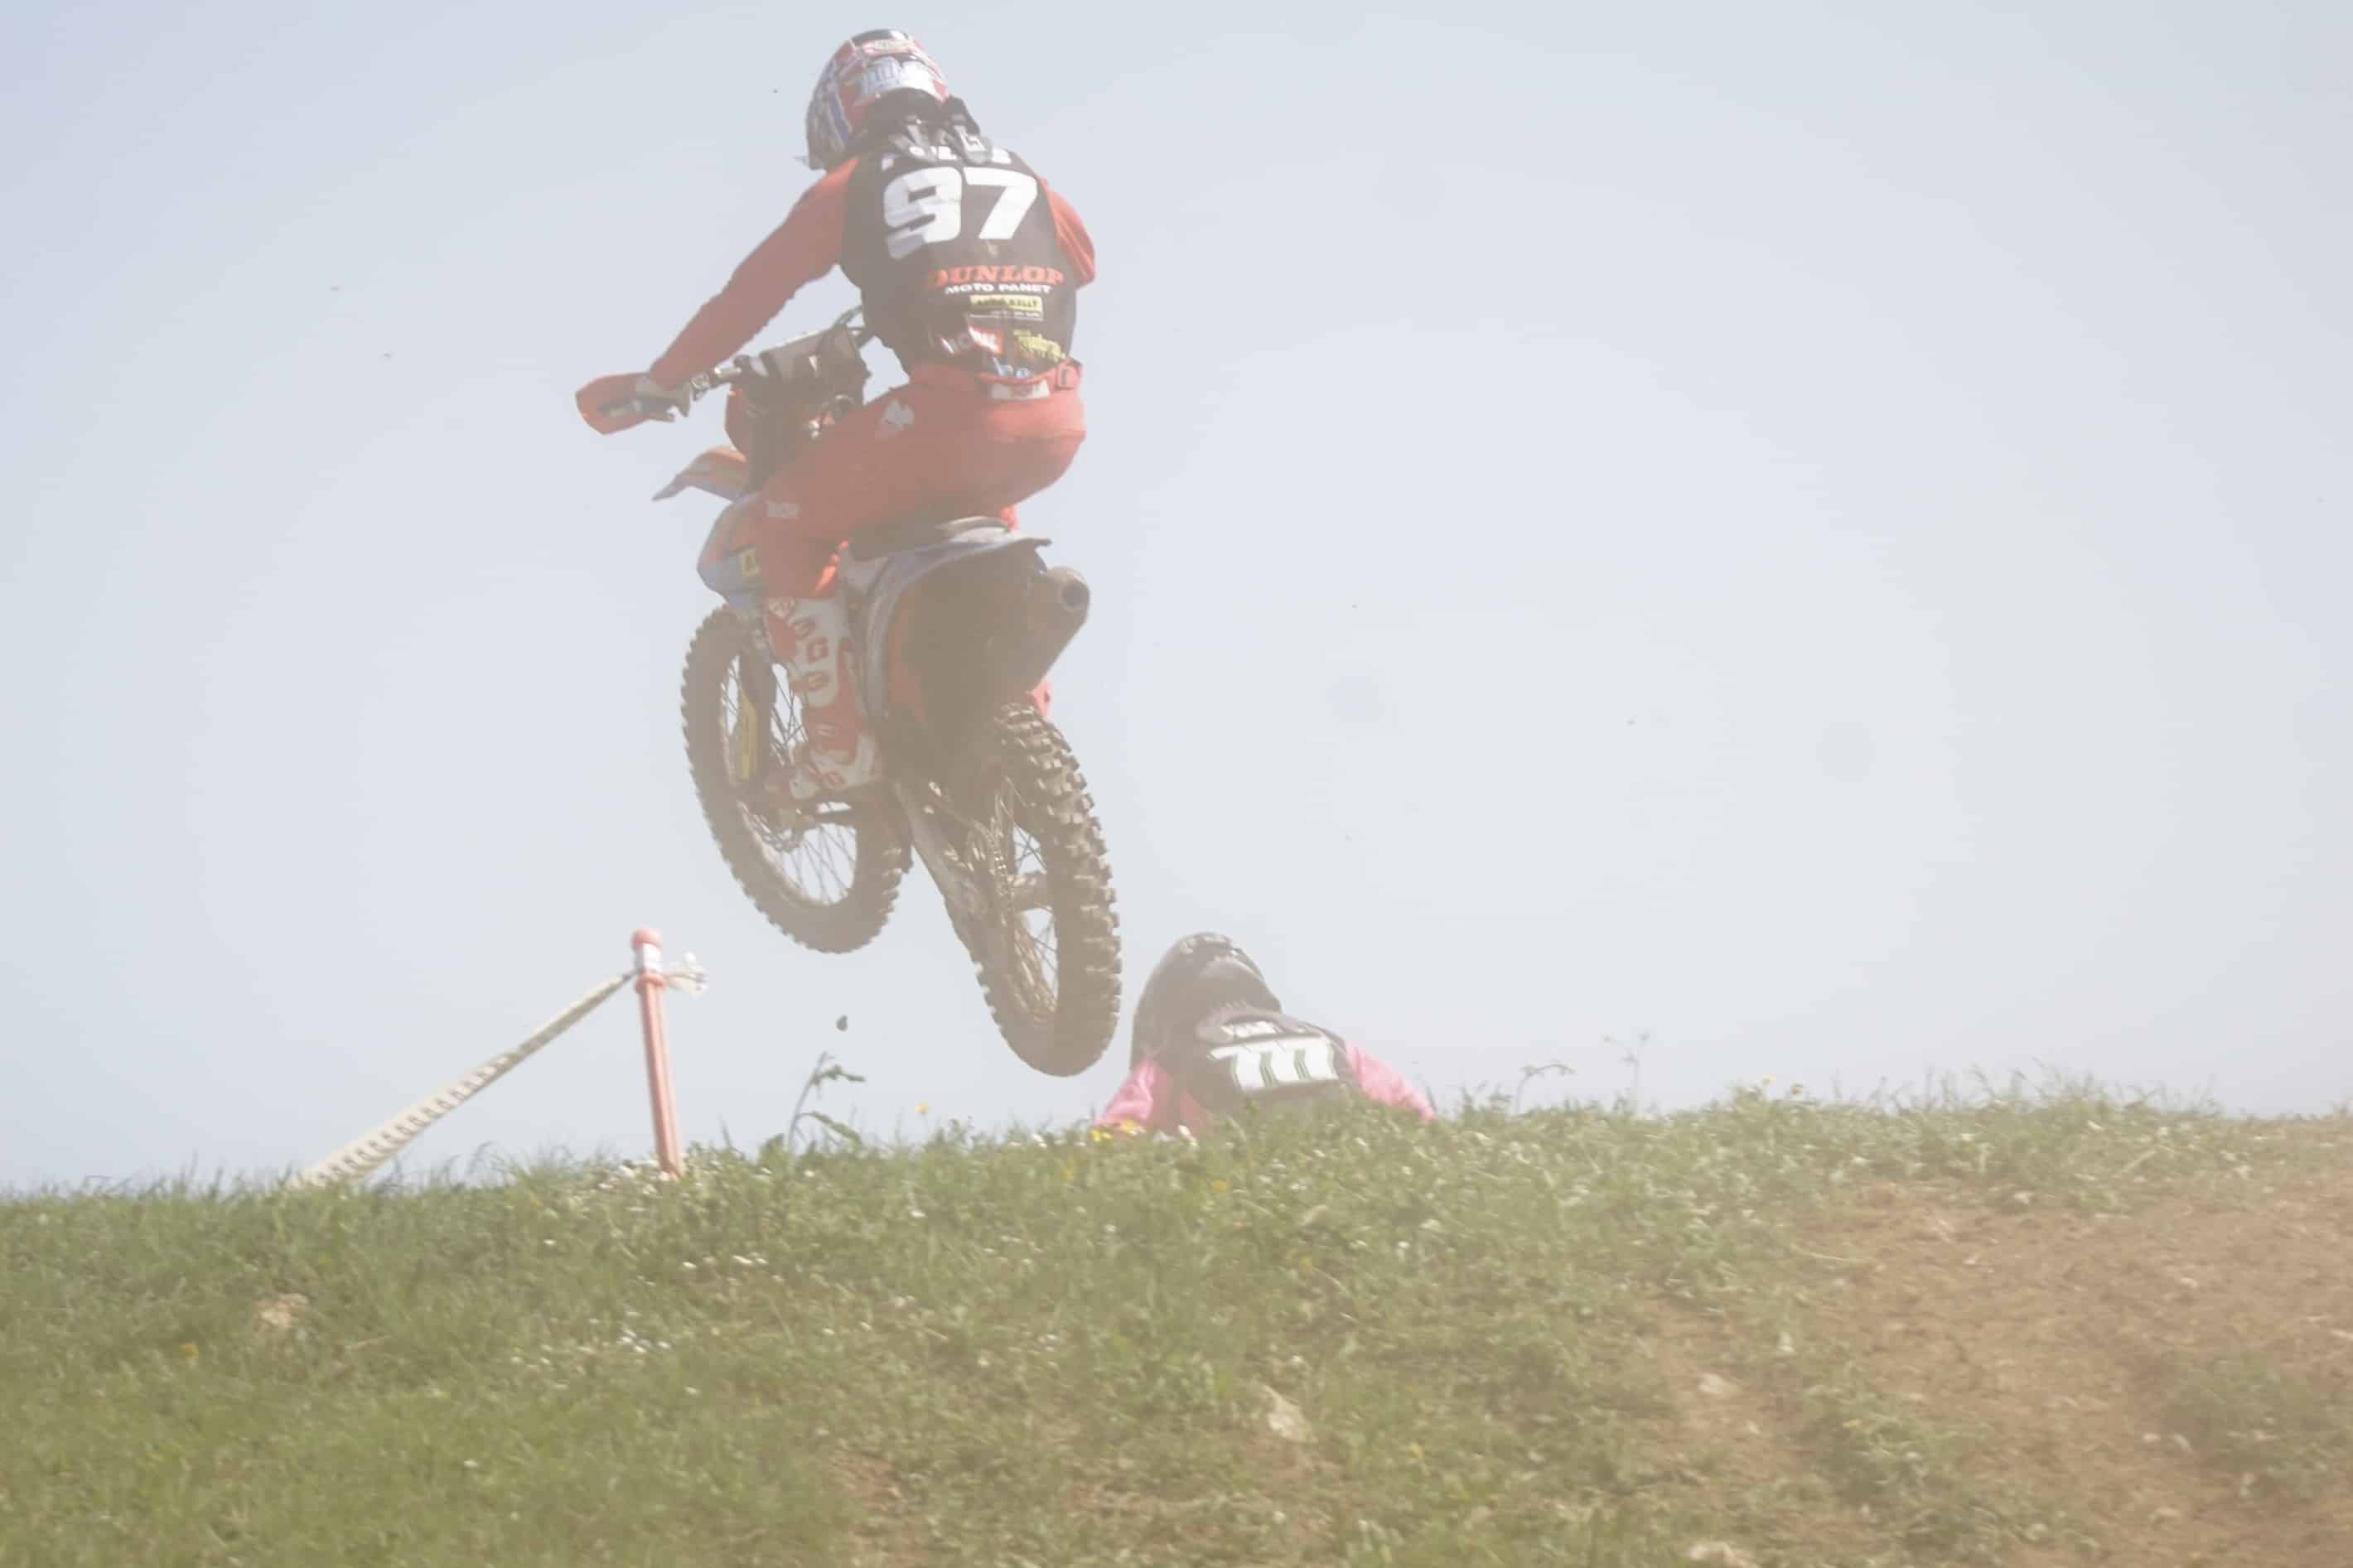 DSC 674_Moto Cross Sittendorf Teil1 am 29.04.2018